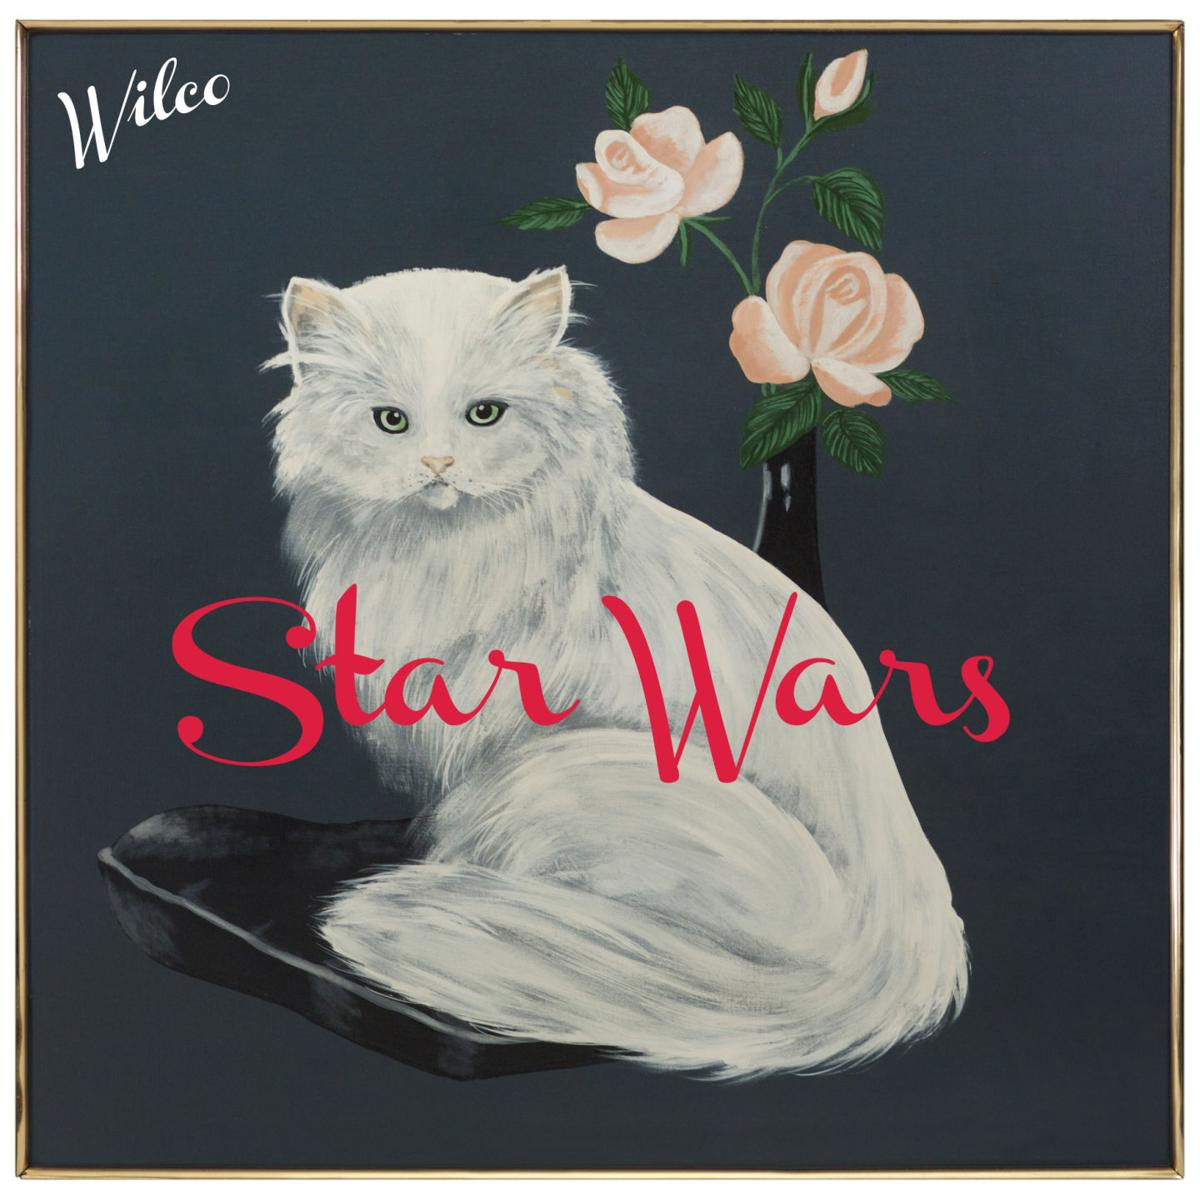 Wilco Celebrates 20th Anniversary With Wickedly Skewed New Album